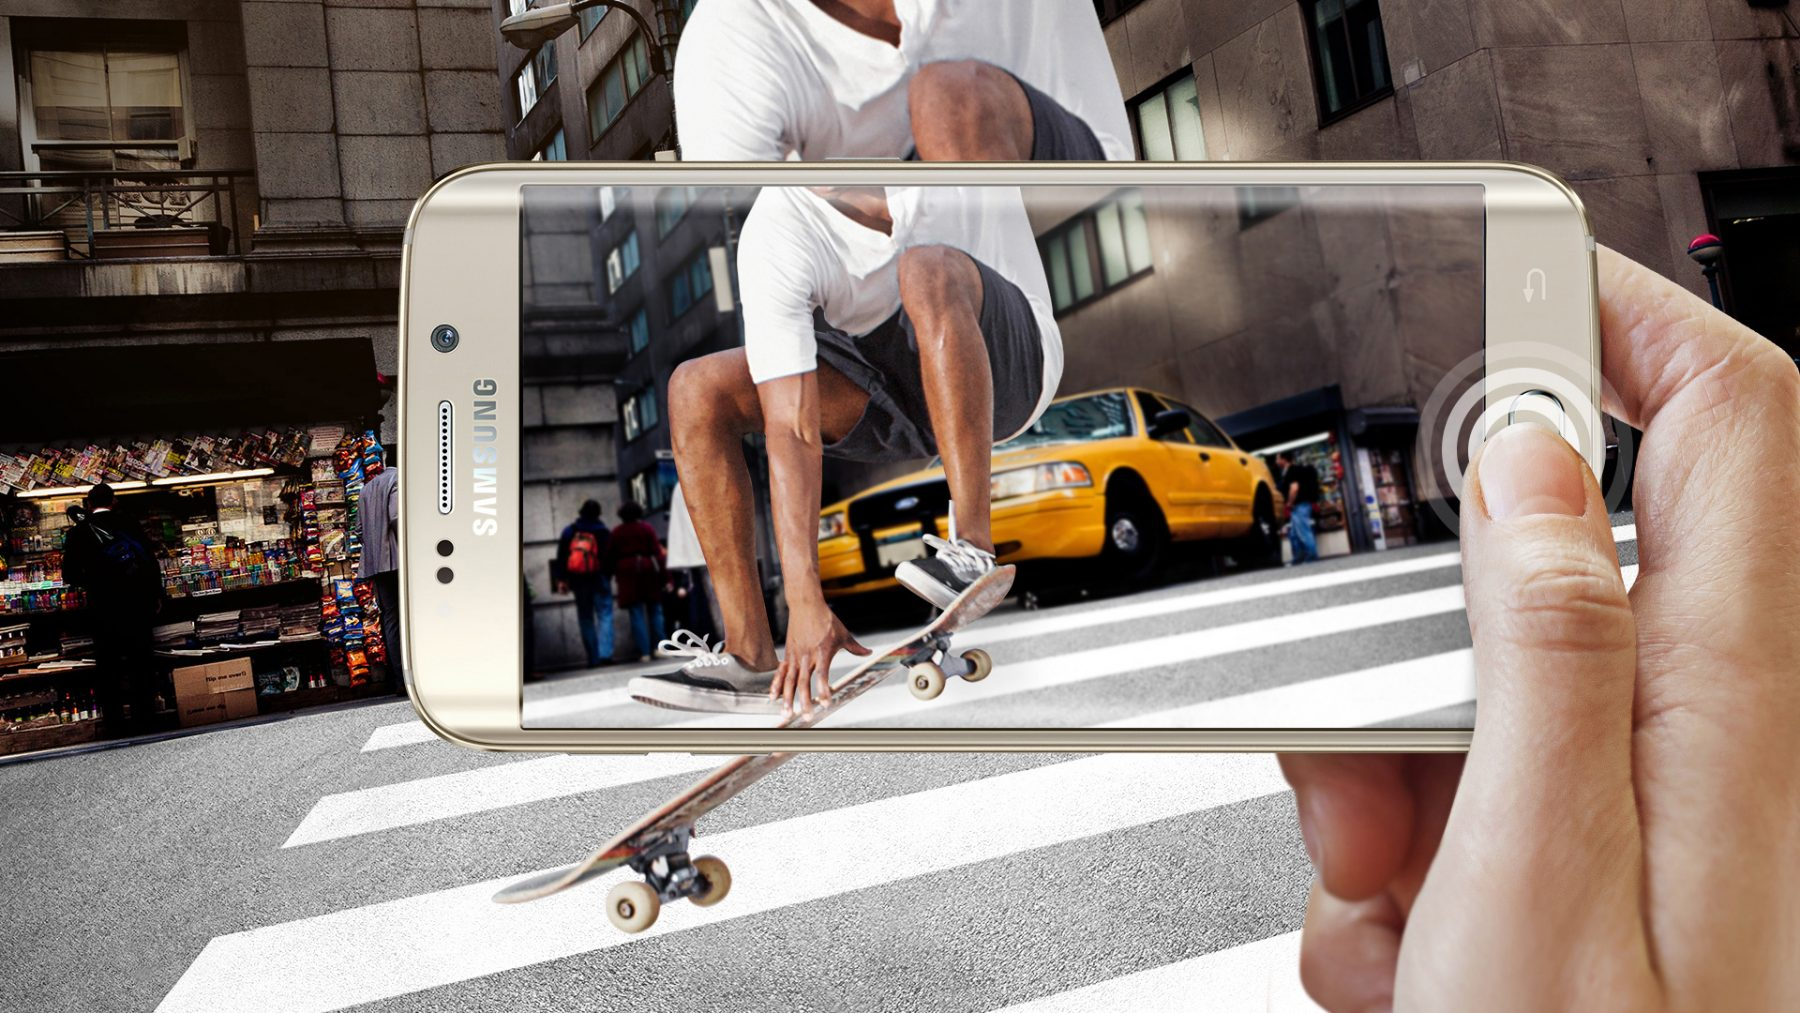 samsung galaxy s6 camera quality, high resolution, release in US, launch date, april 11